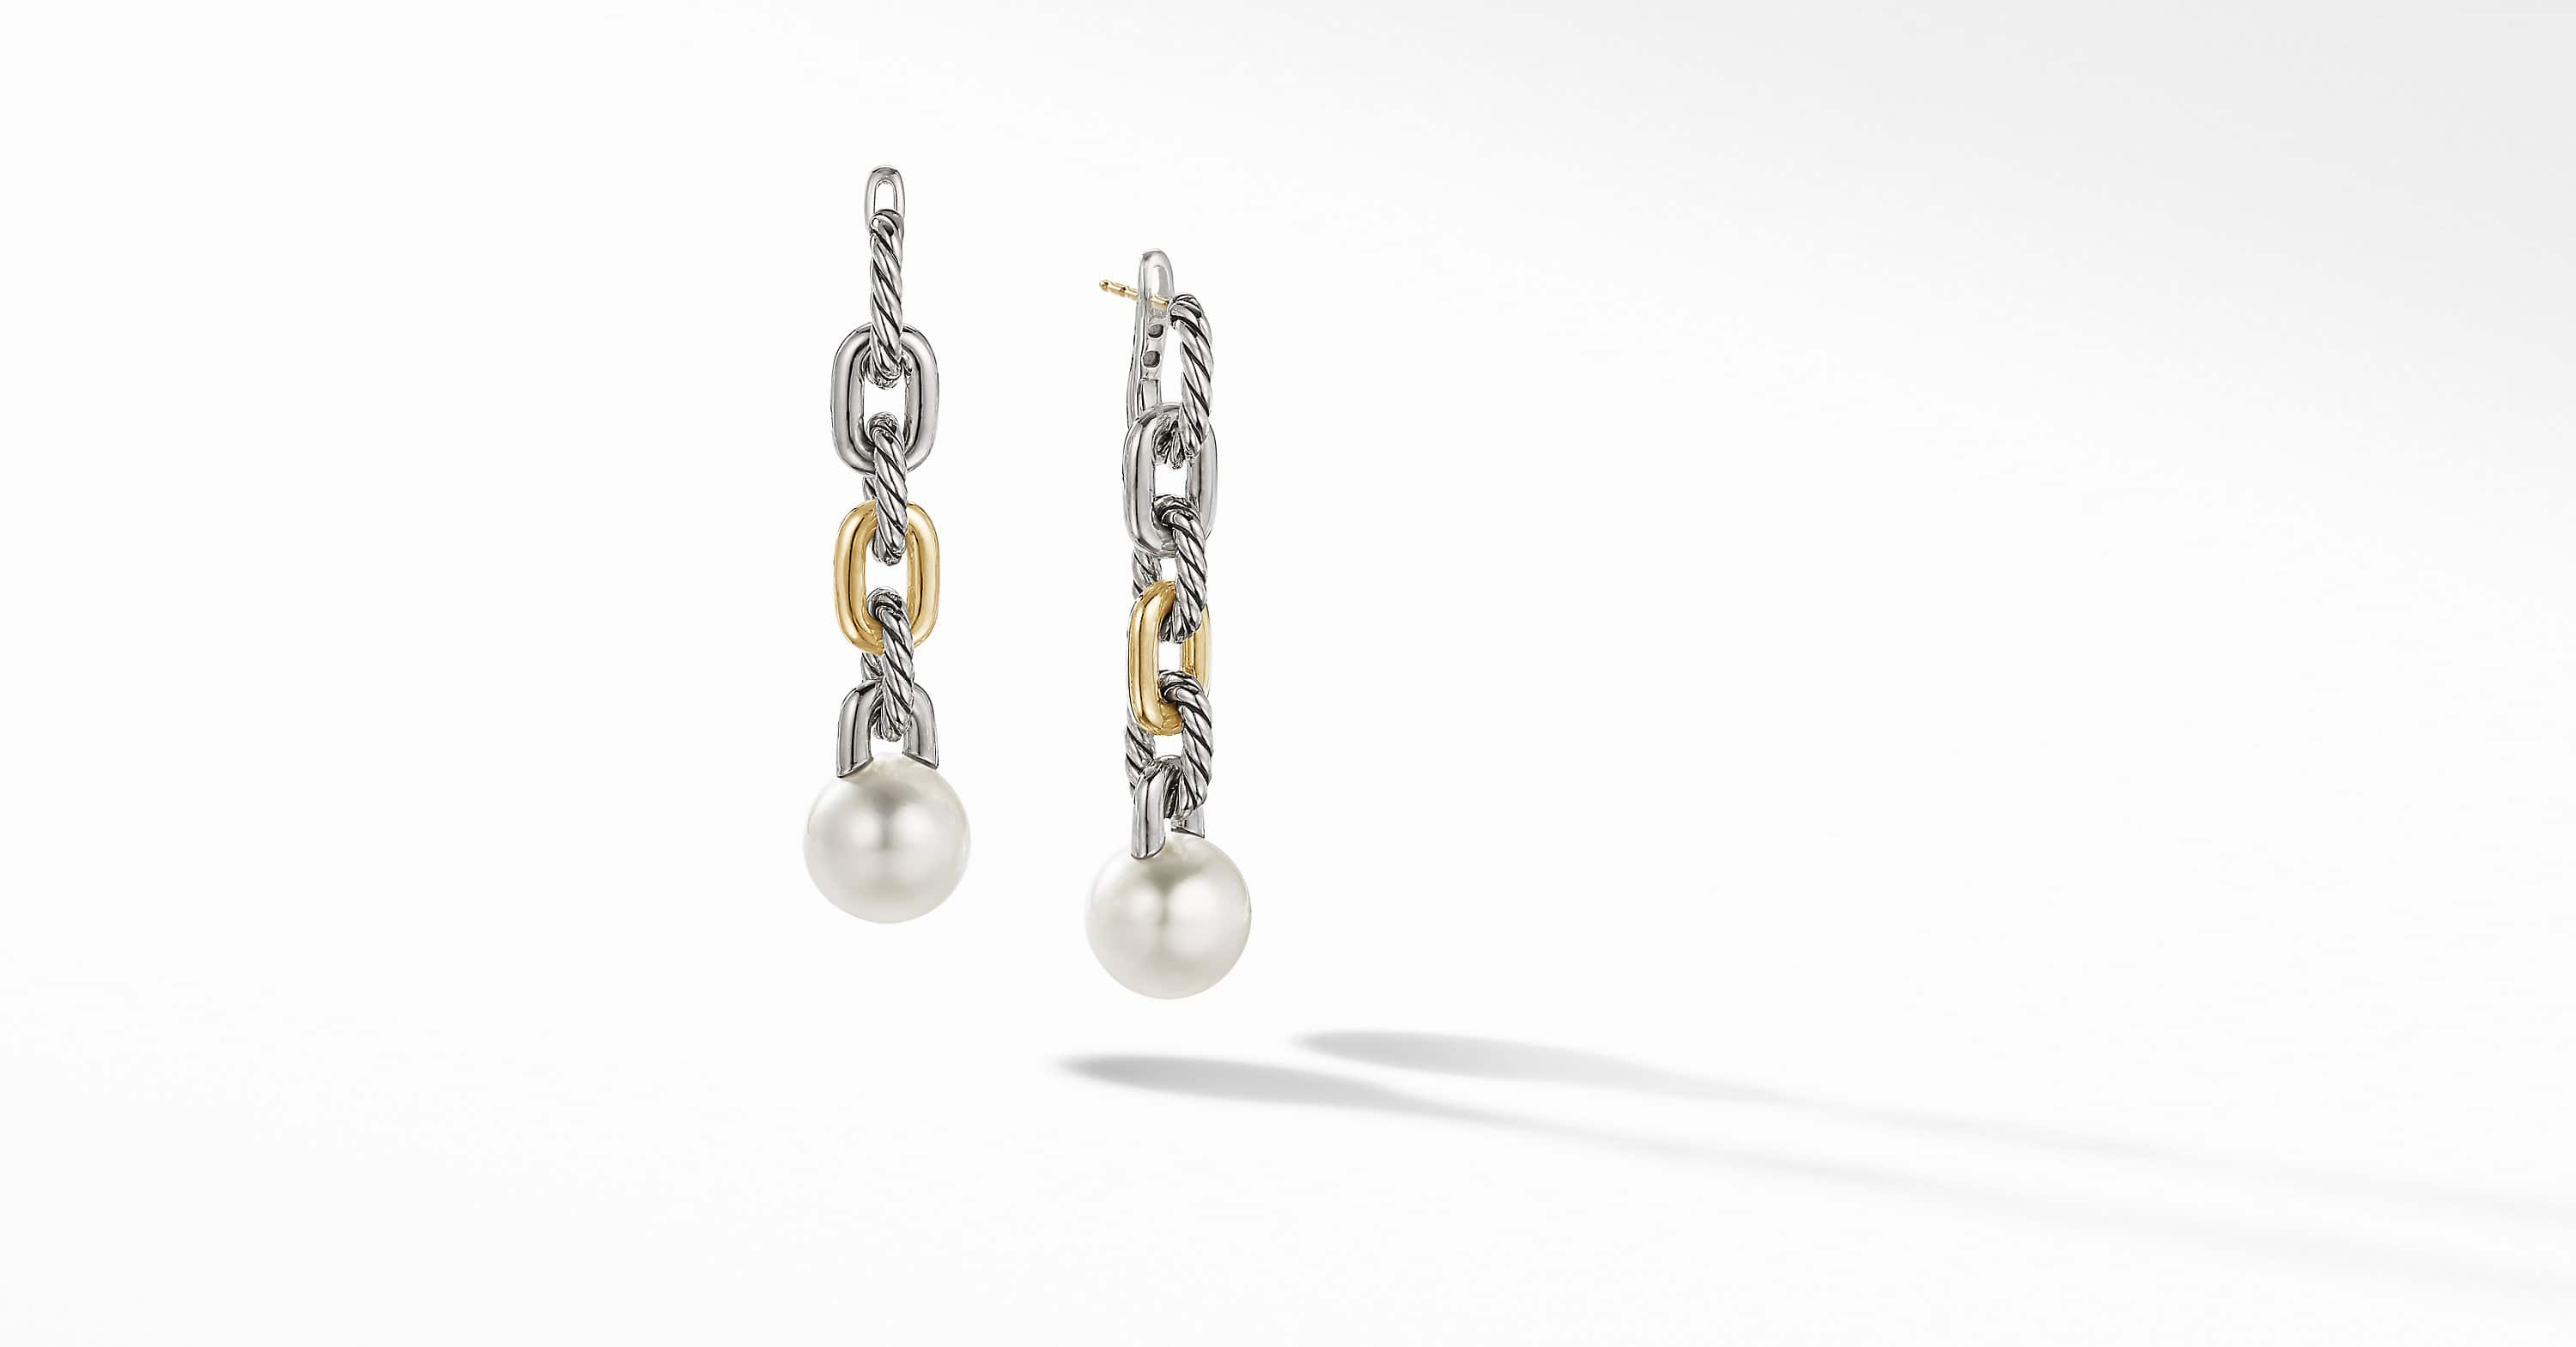 DY Madison Pearl Chain Drop Earrings with 18K Yellow Gold, 52.7mm